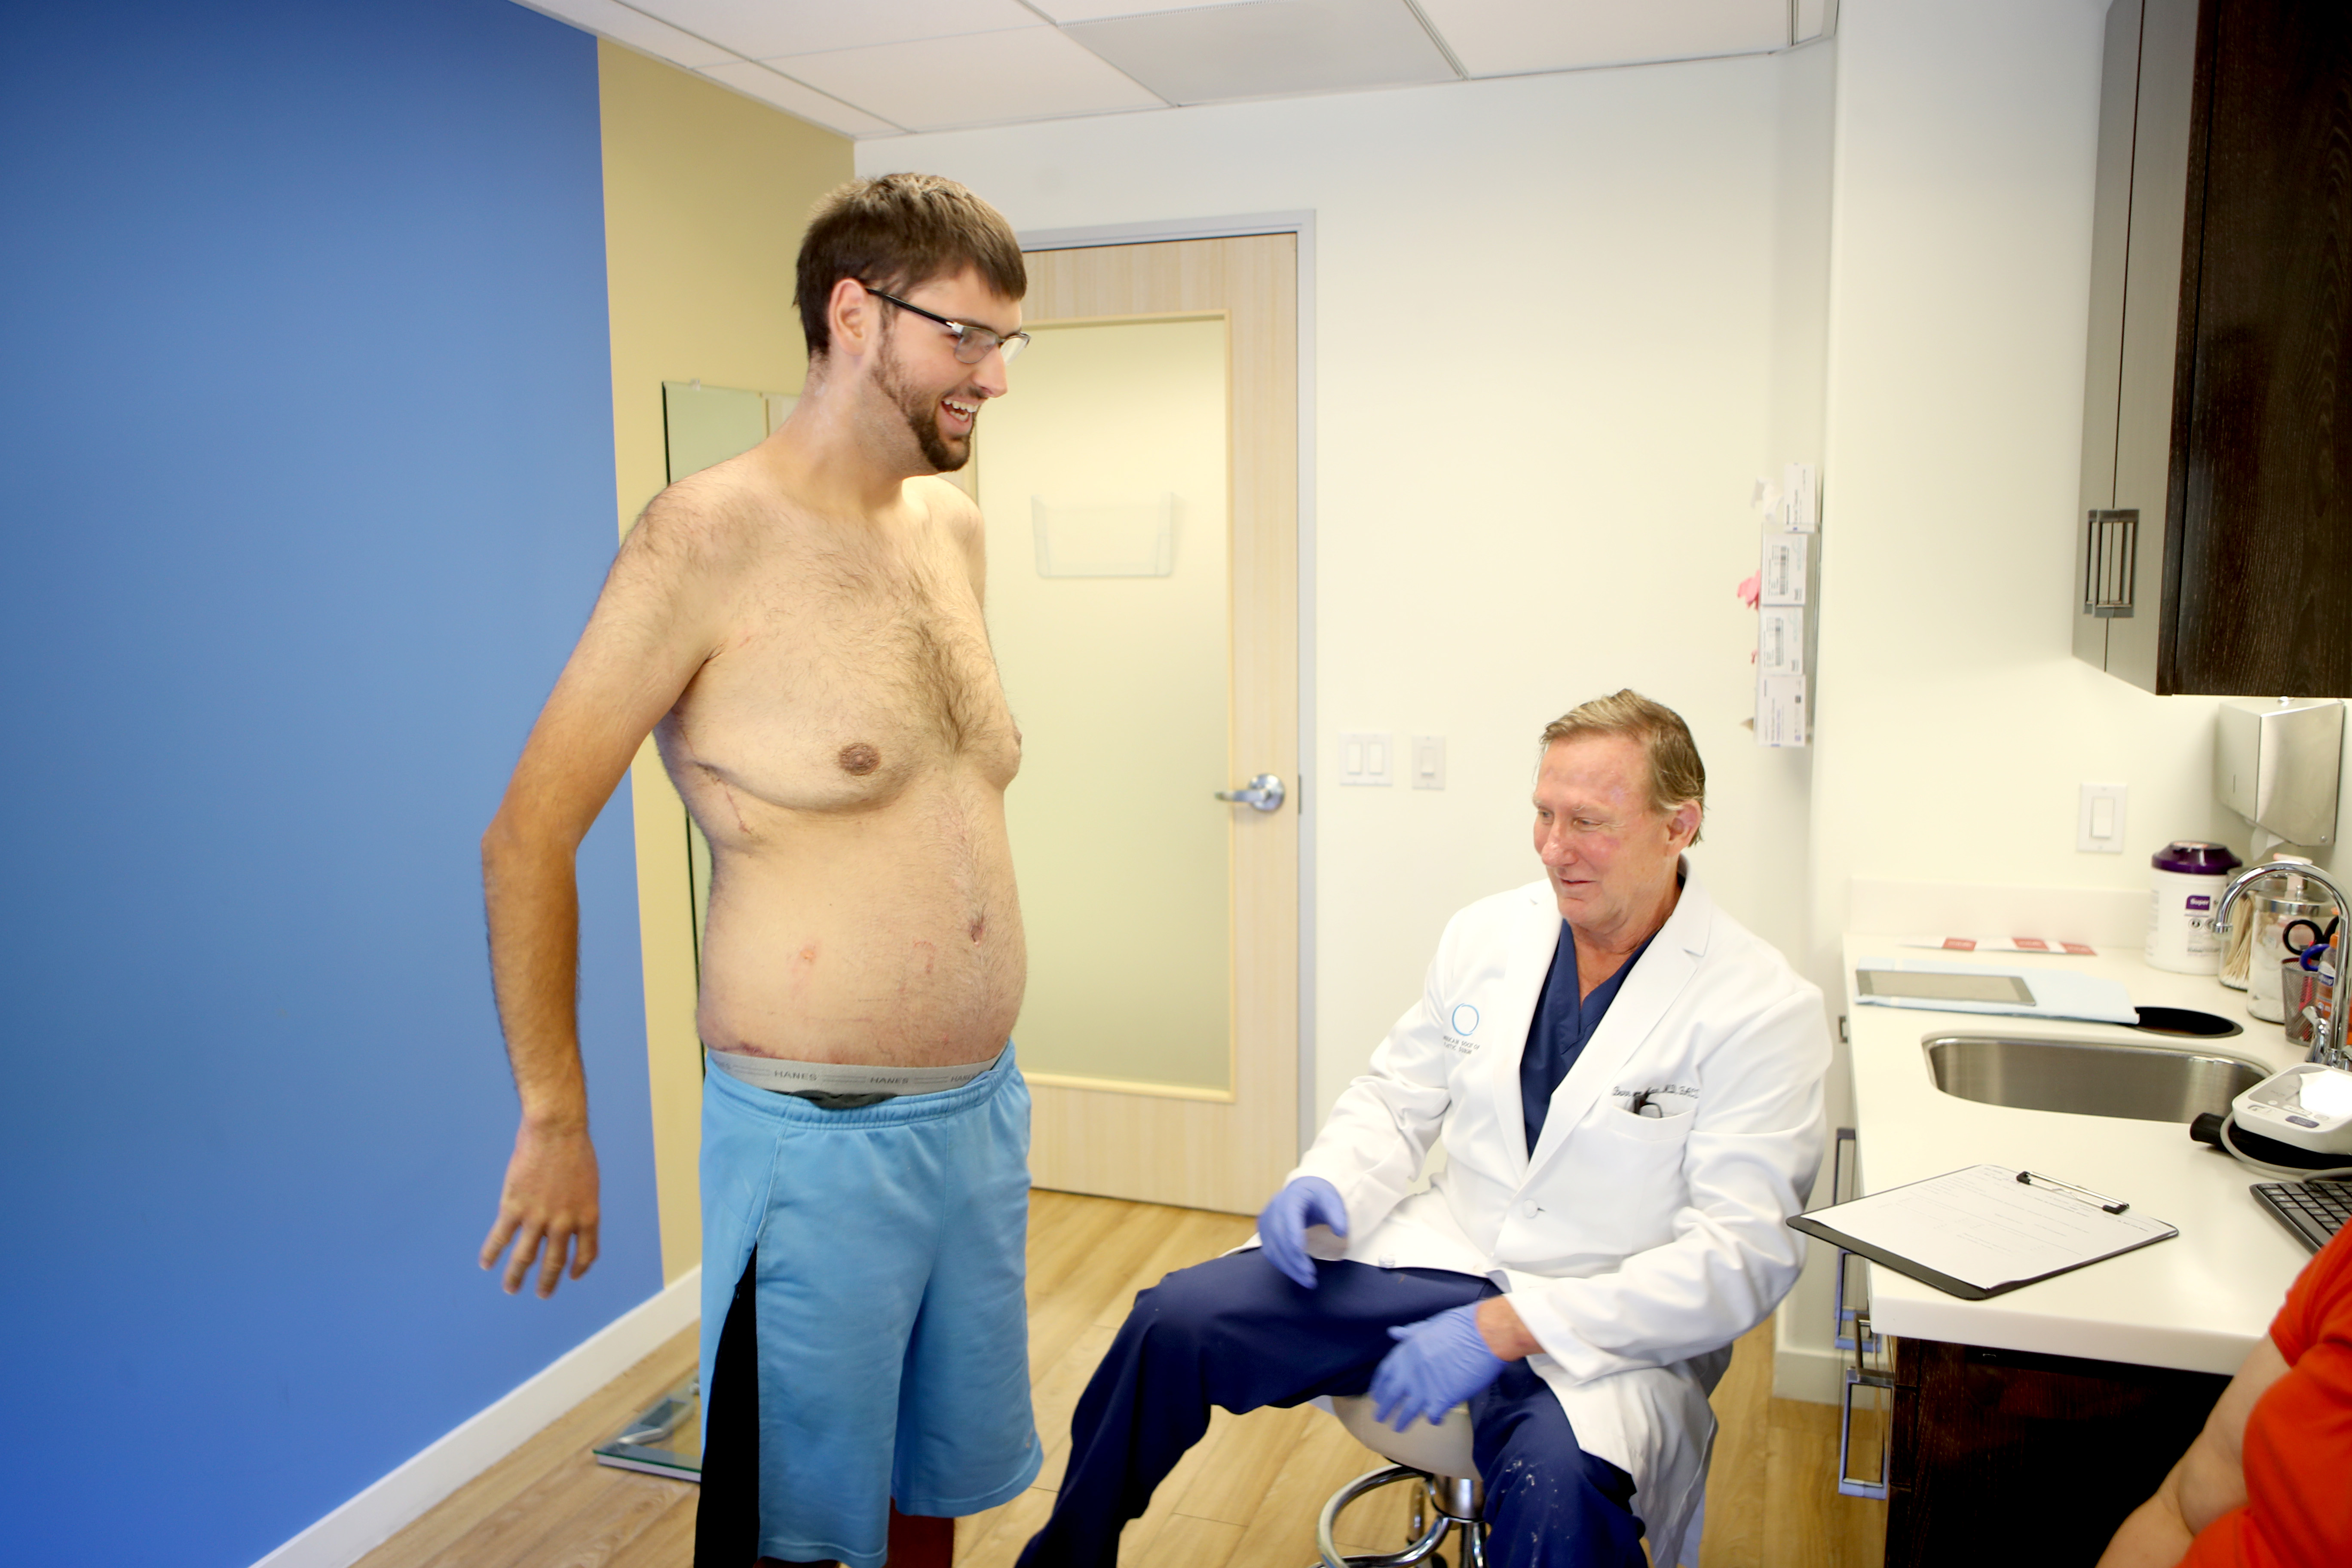 jacob eliot weight loss the doctors skin removal cosmeticare dr. niccole